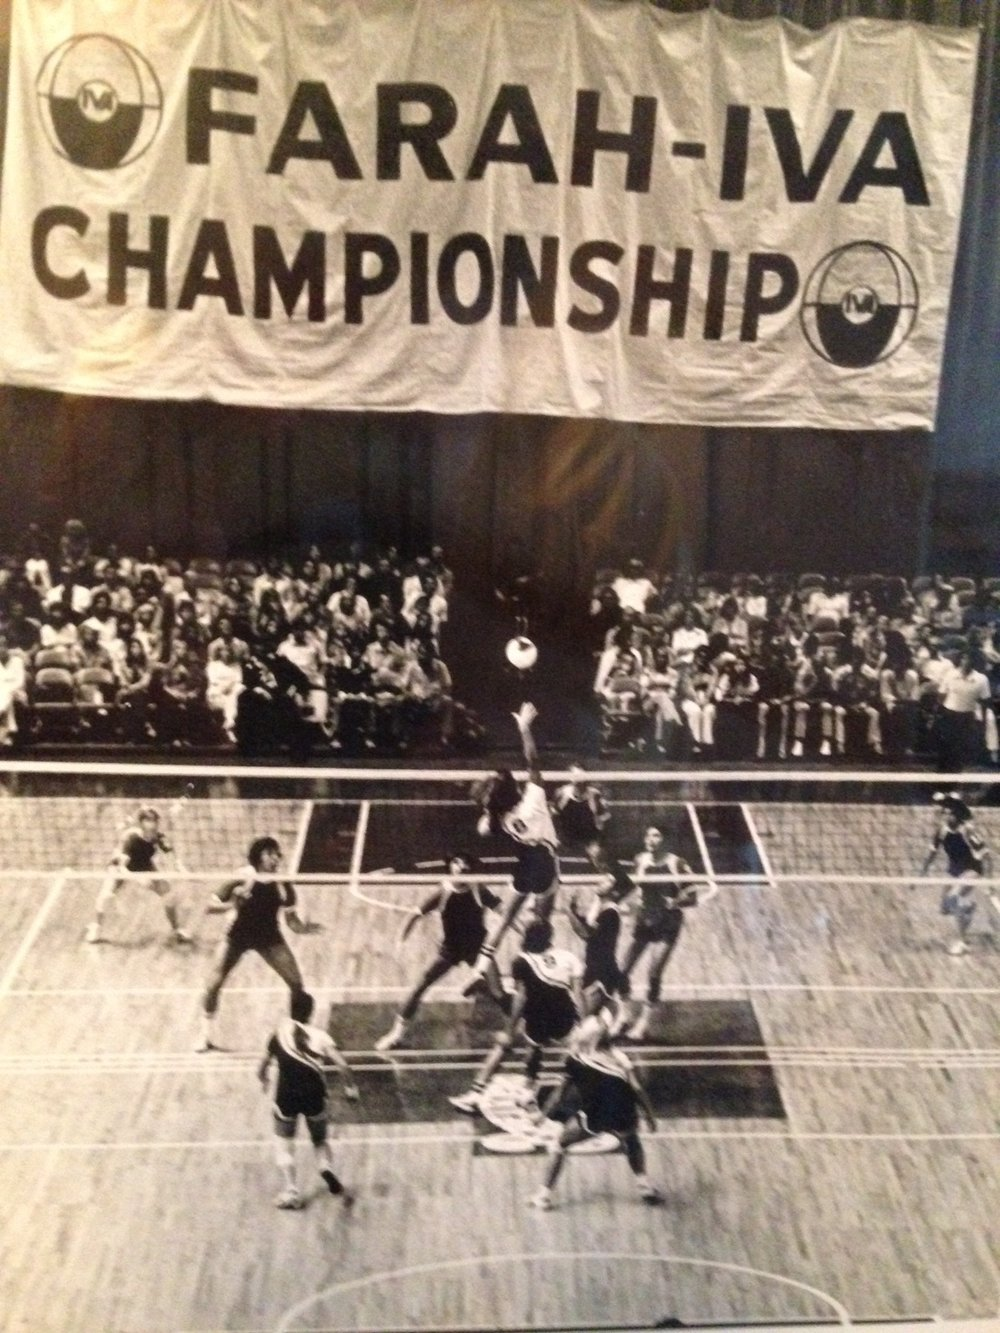 IVA 1975 Championship Match - Los Angeles Stars versus San Diego Breakers